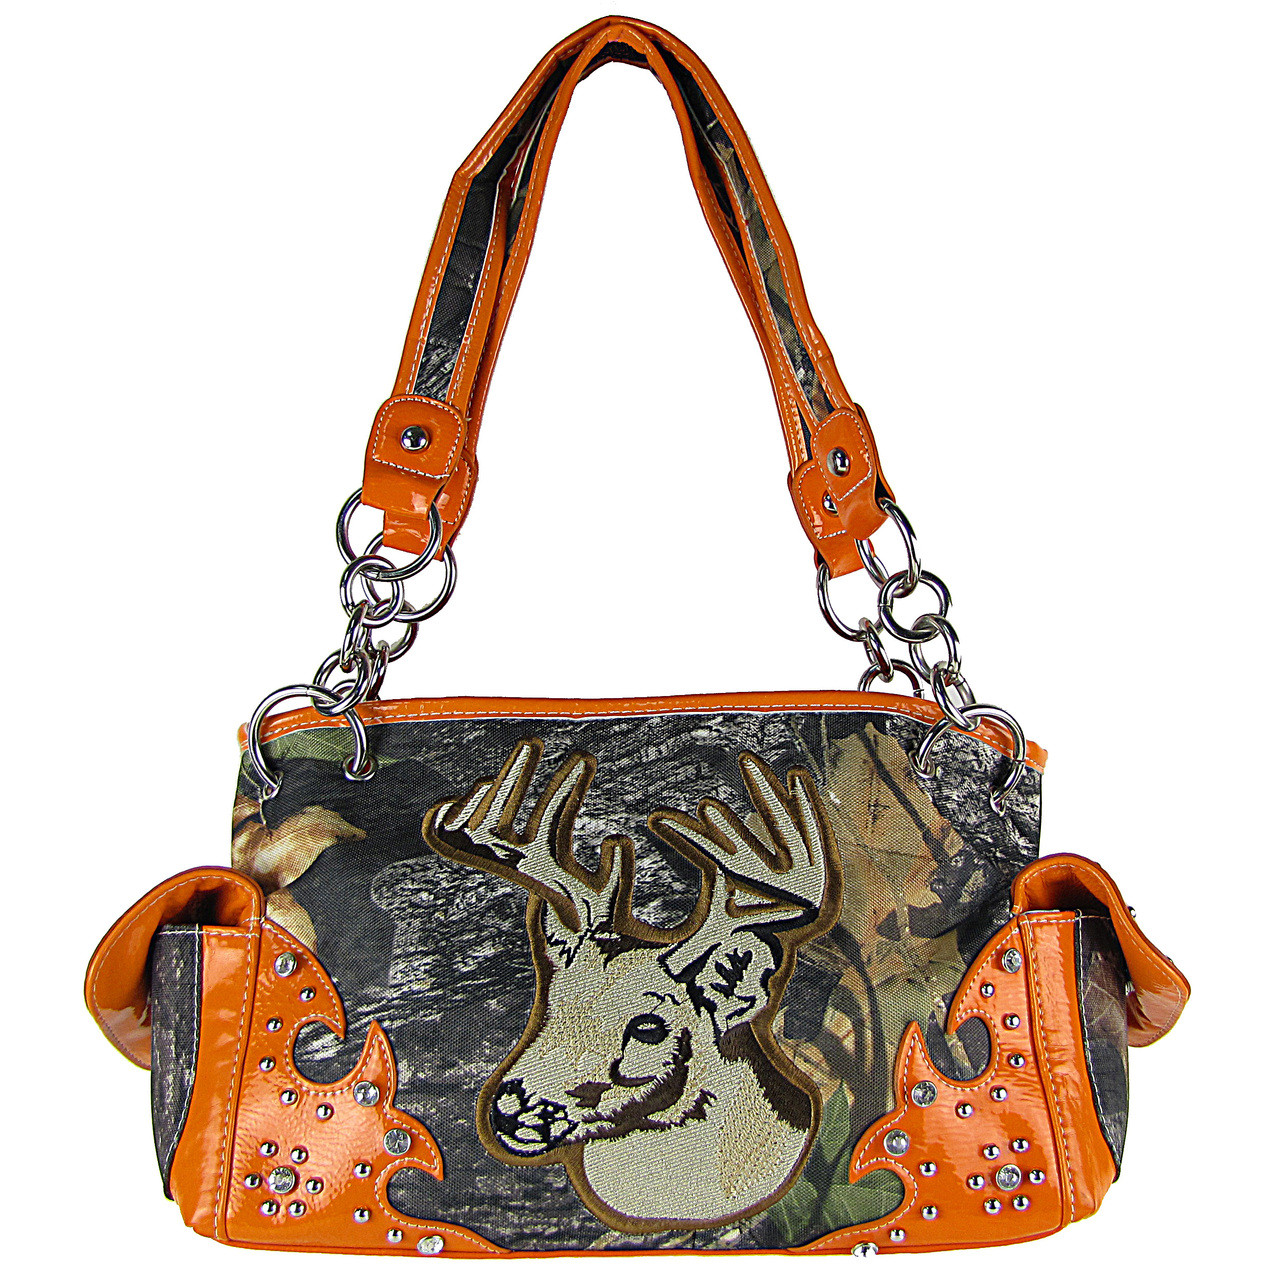 ORANGE MOSSY CAMO DEER SHOULDER HANDBAG HB1-CA6625ORG